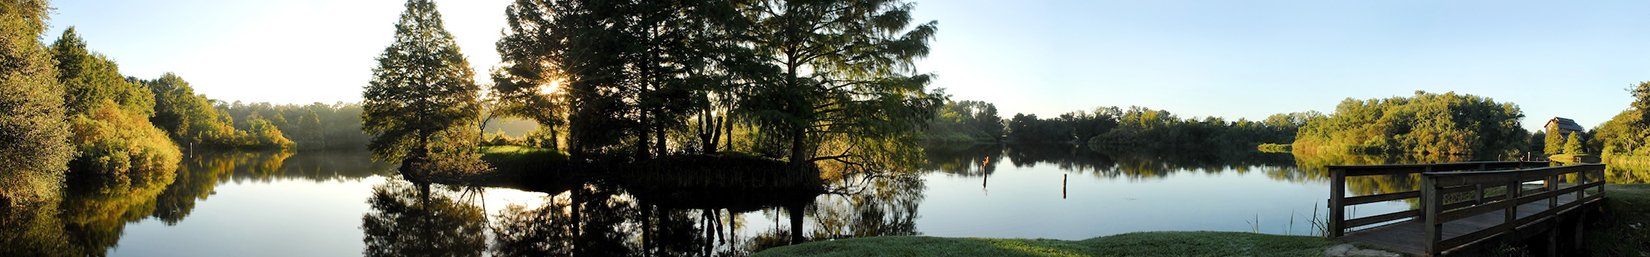 Lake Alice on the UF campus, Gainesville, Florida